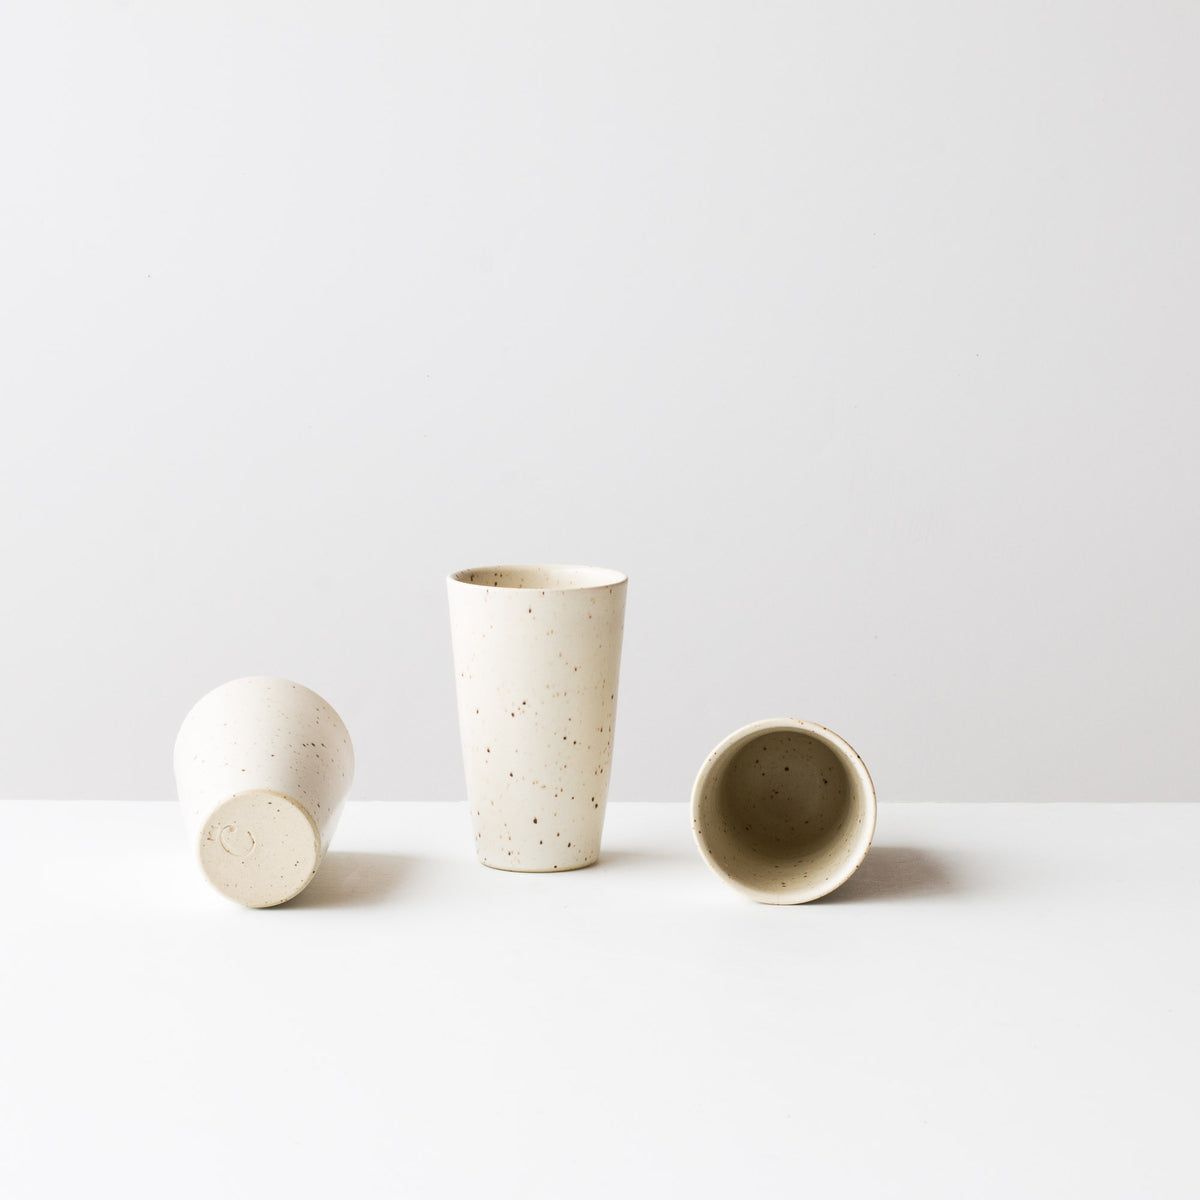 Speckled Off-White -  Handmade Small Ceramic Goblets / Tumblers - Sold by Chic & Basta